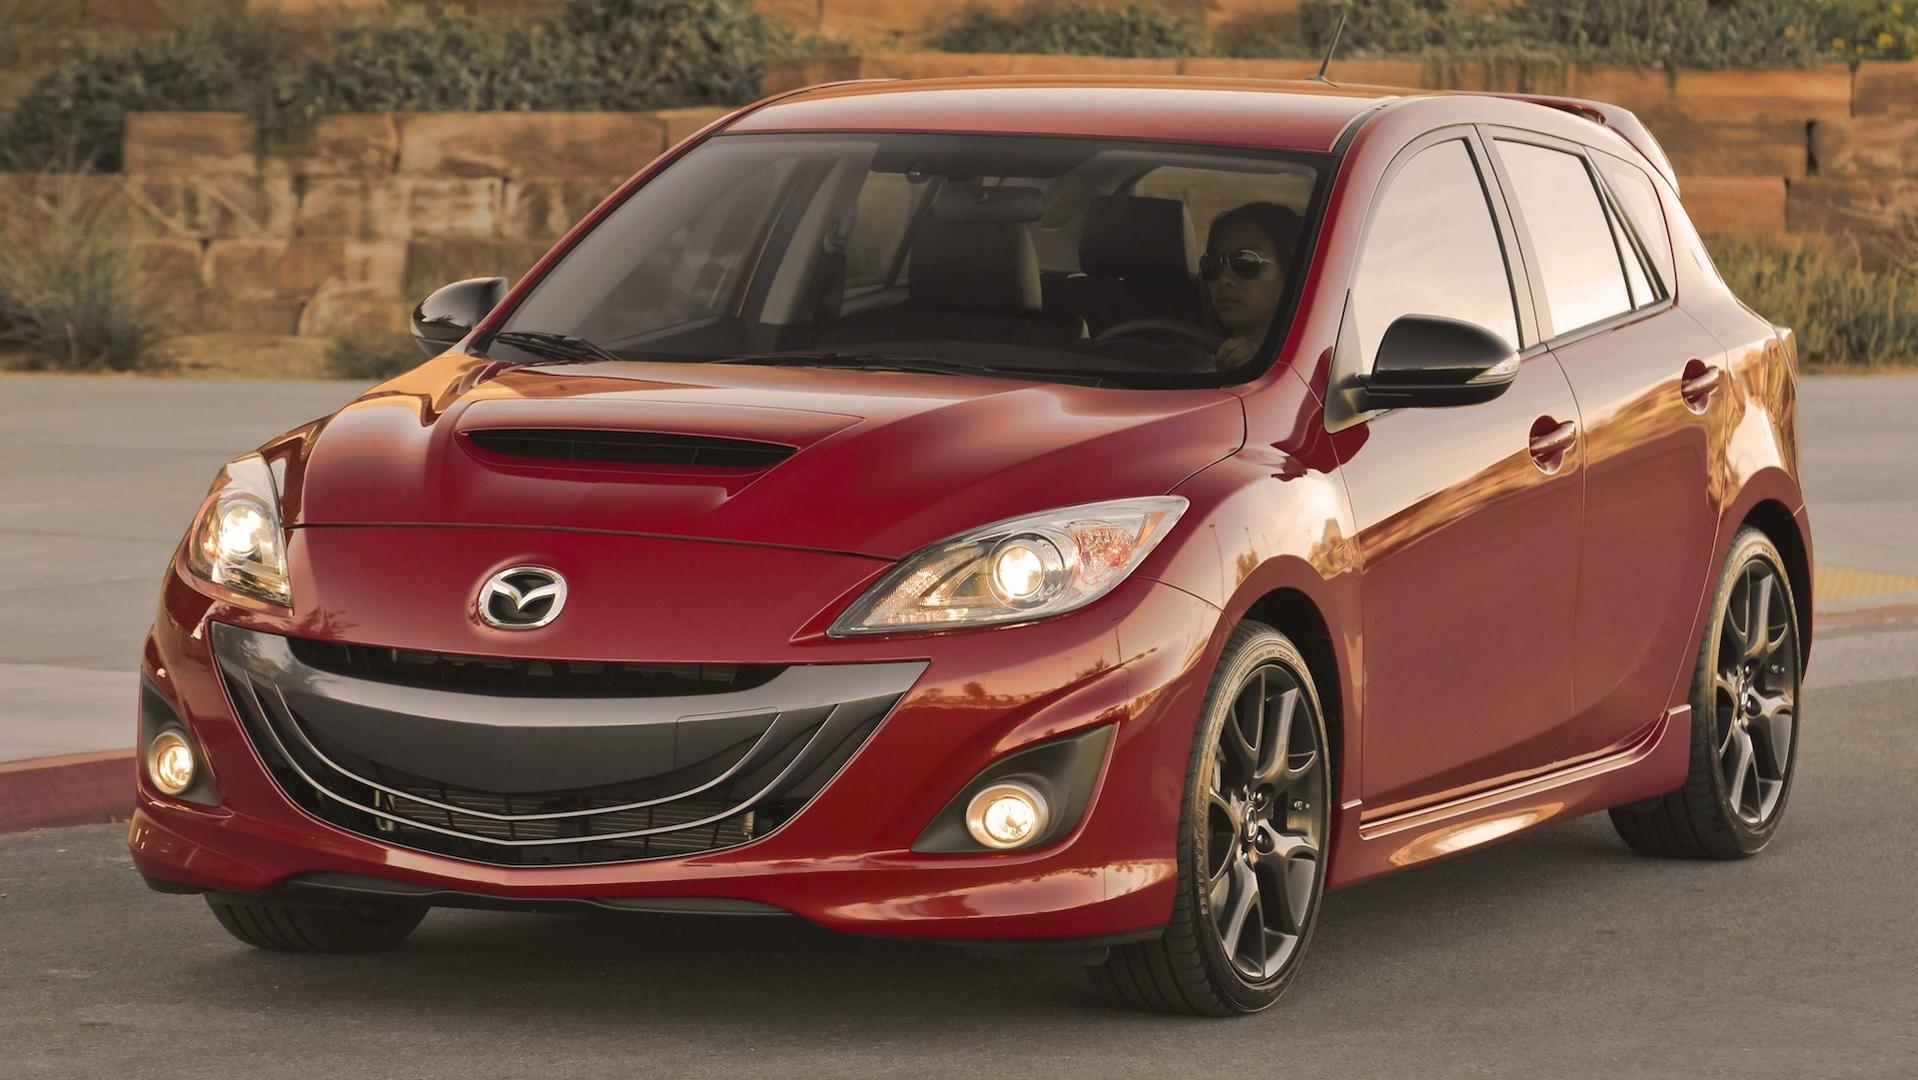 Best Cars Under 10 000 For College Graduates Cheap Safe Fun